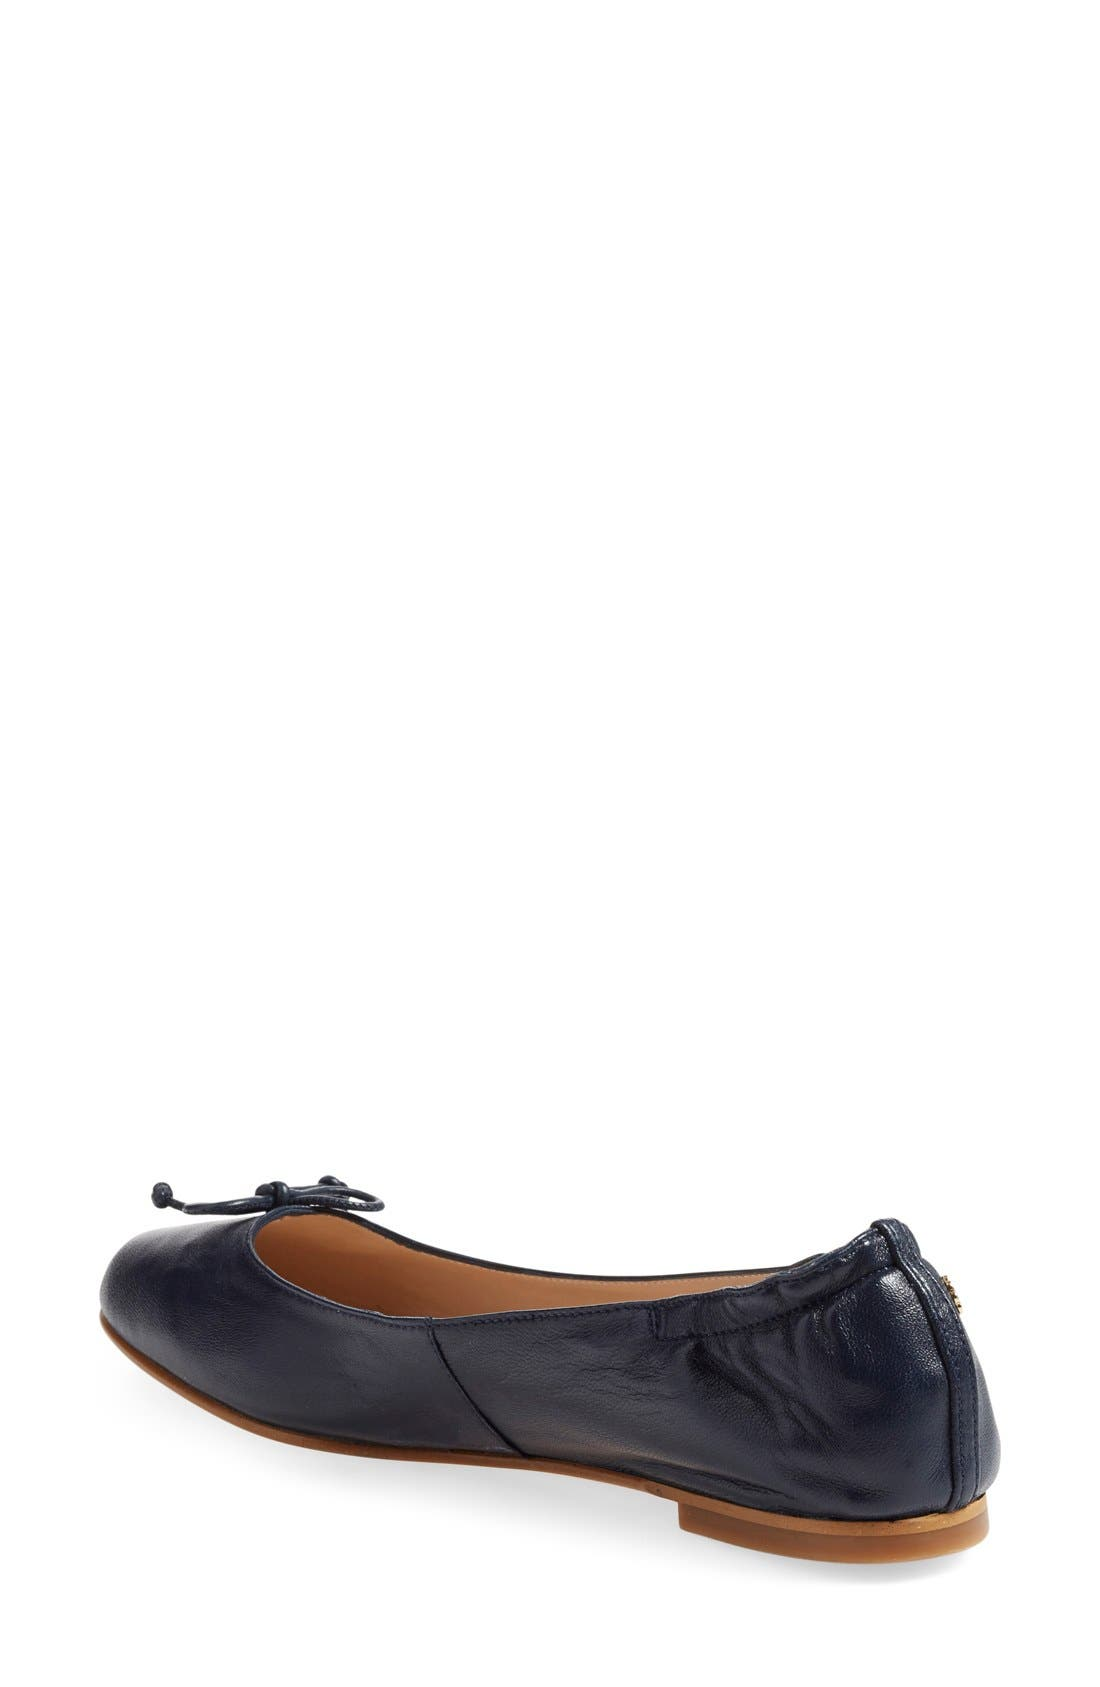 'Thea' Ballet Flat,                             Alternate thumbnail 2, color,                             Navy Leather